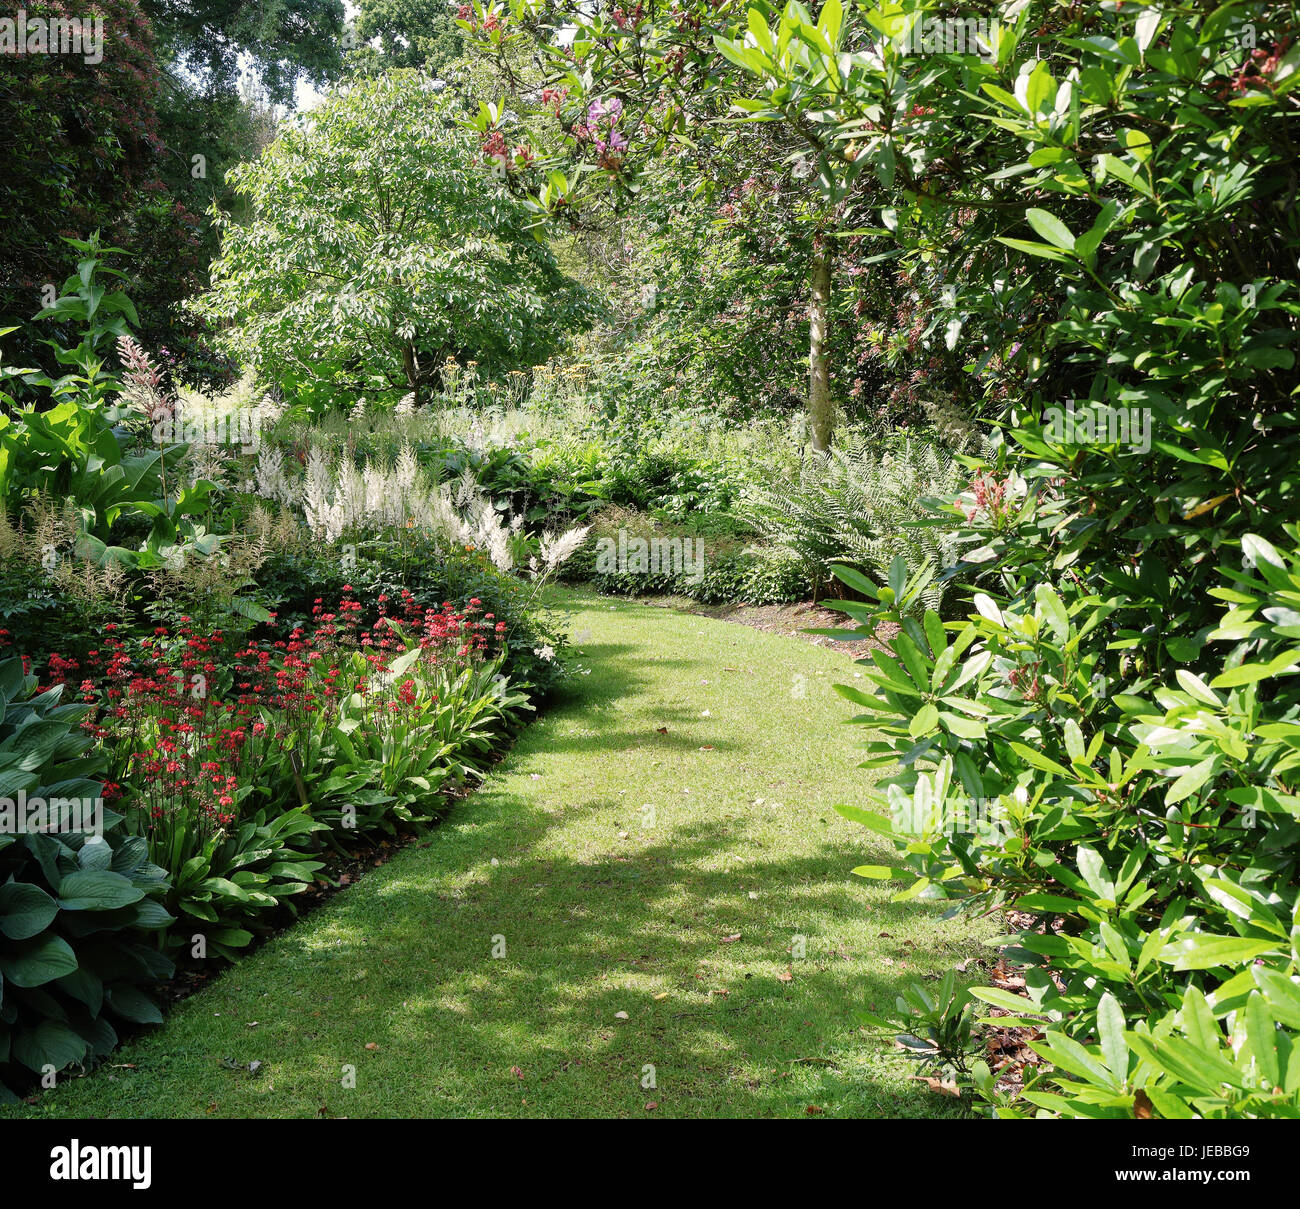 Grassy path between flowerbeds in an English garden - Stock Image